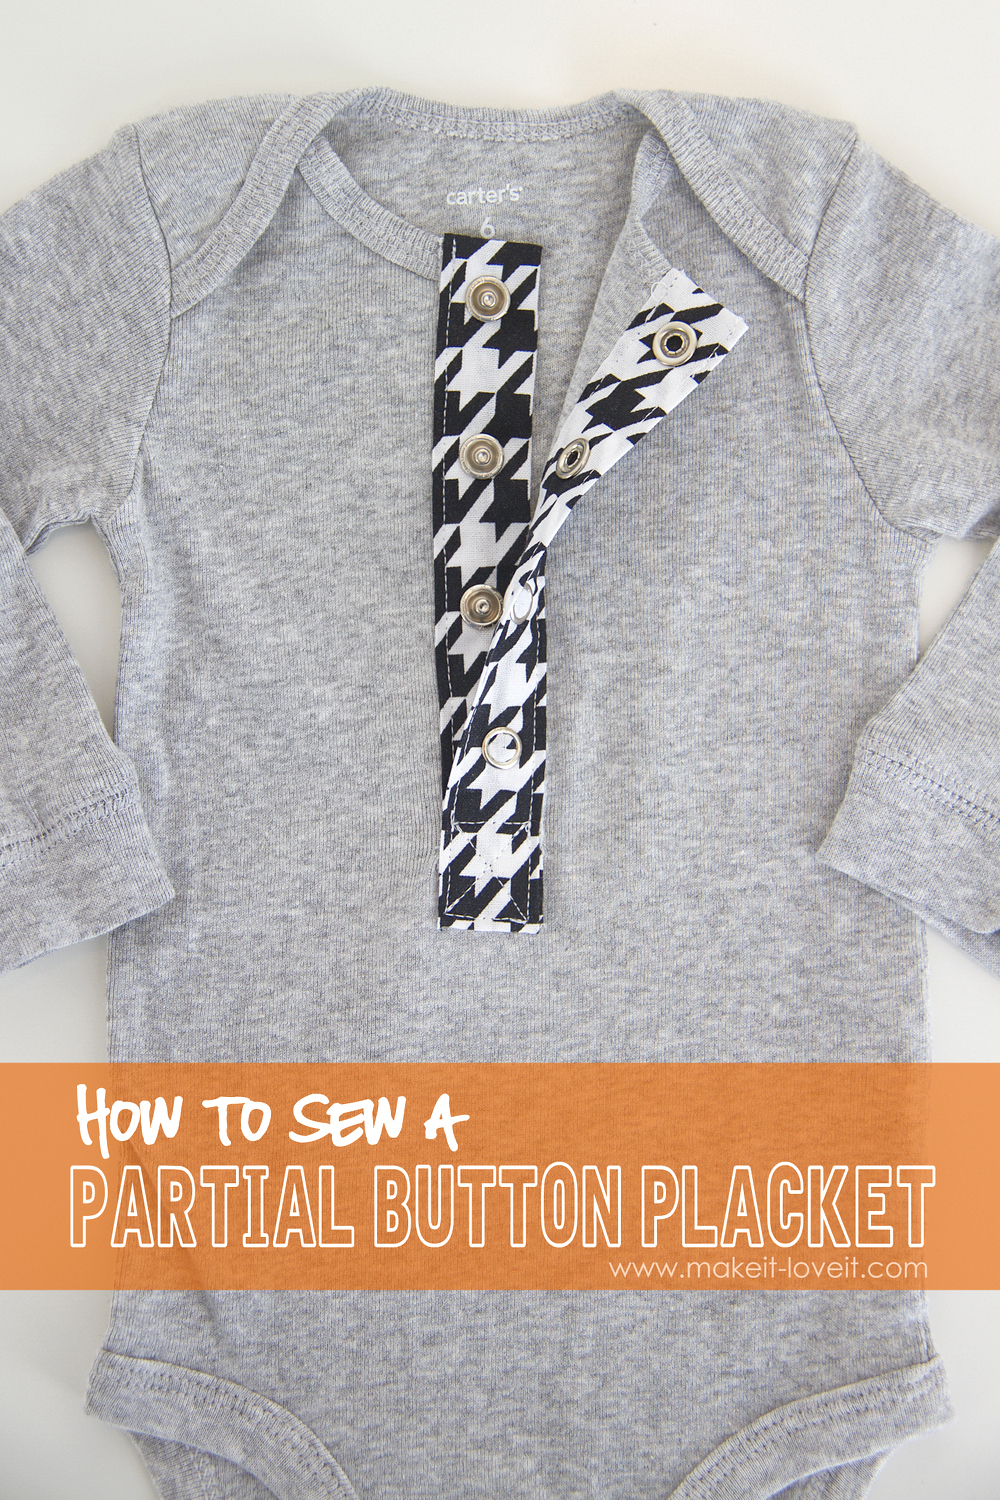 Sewing Tips: How To Sew a PARTIAL BUTTON PLACKET